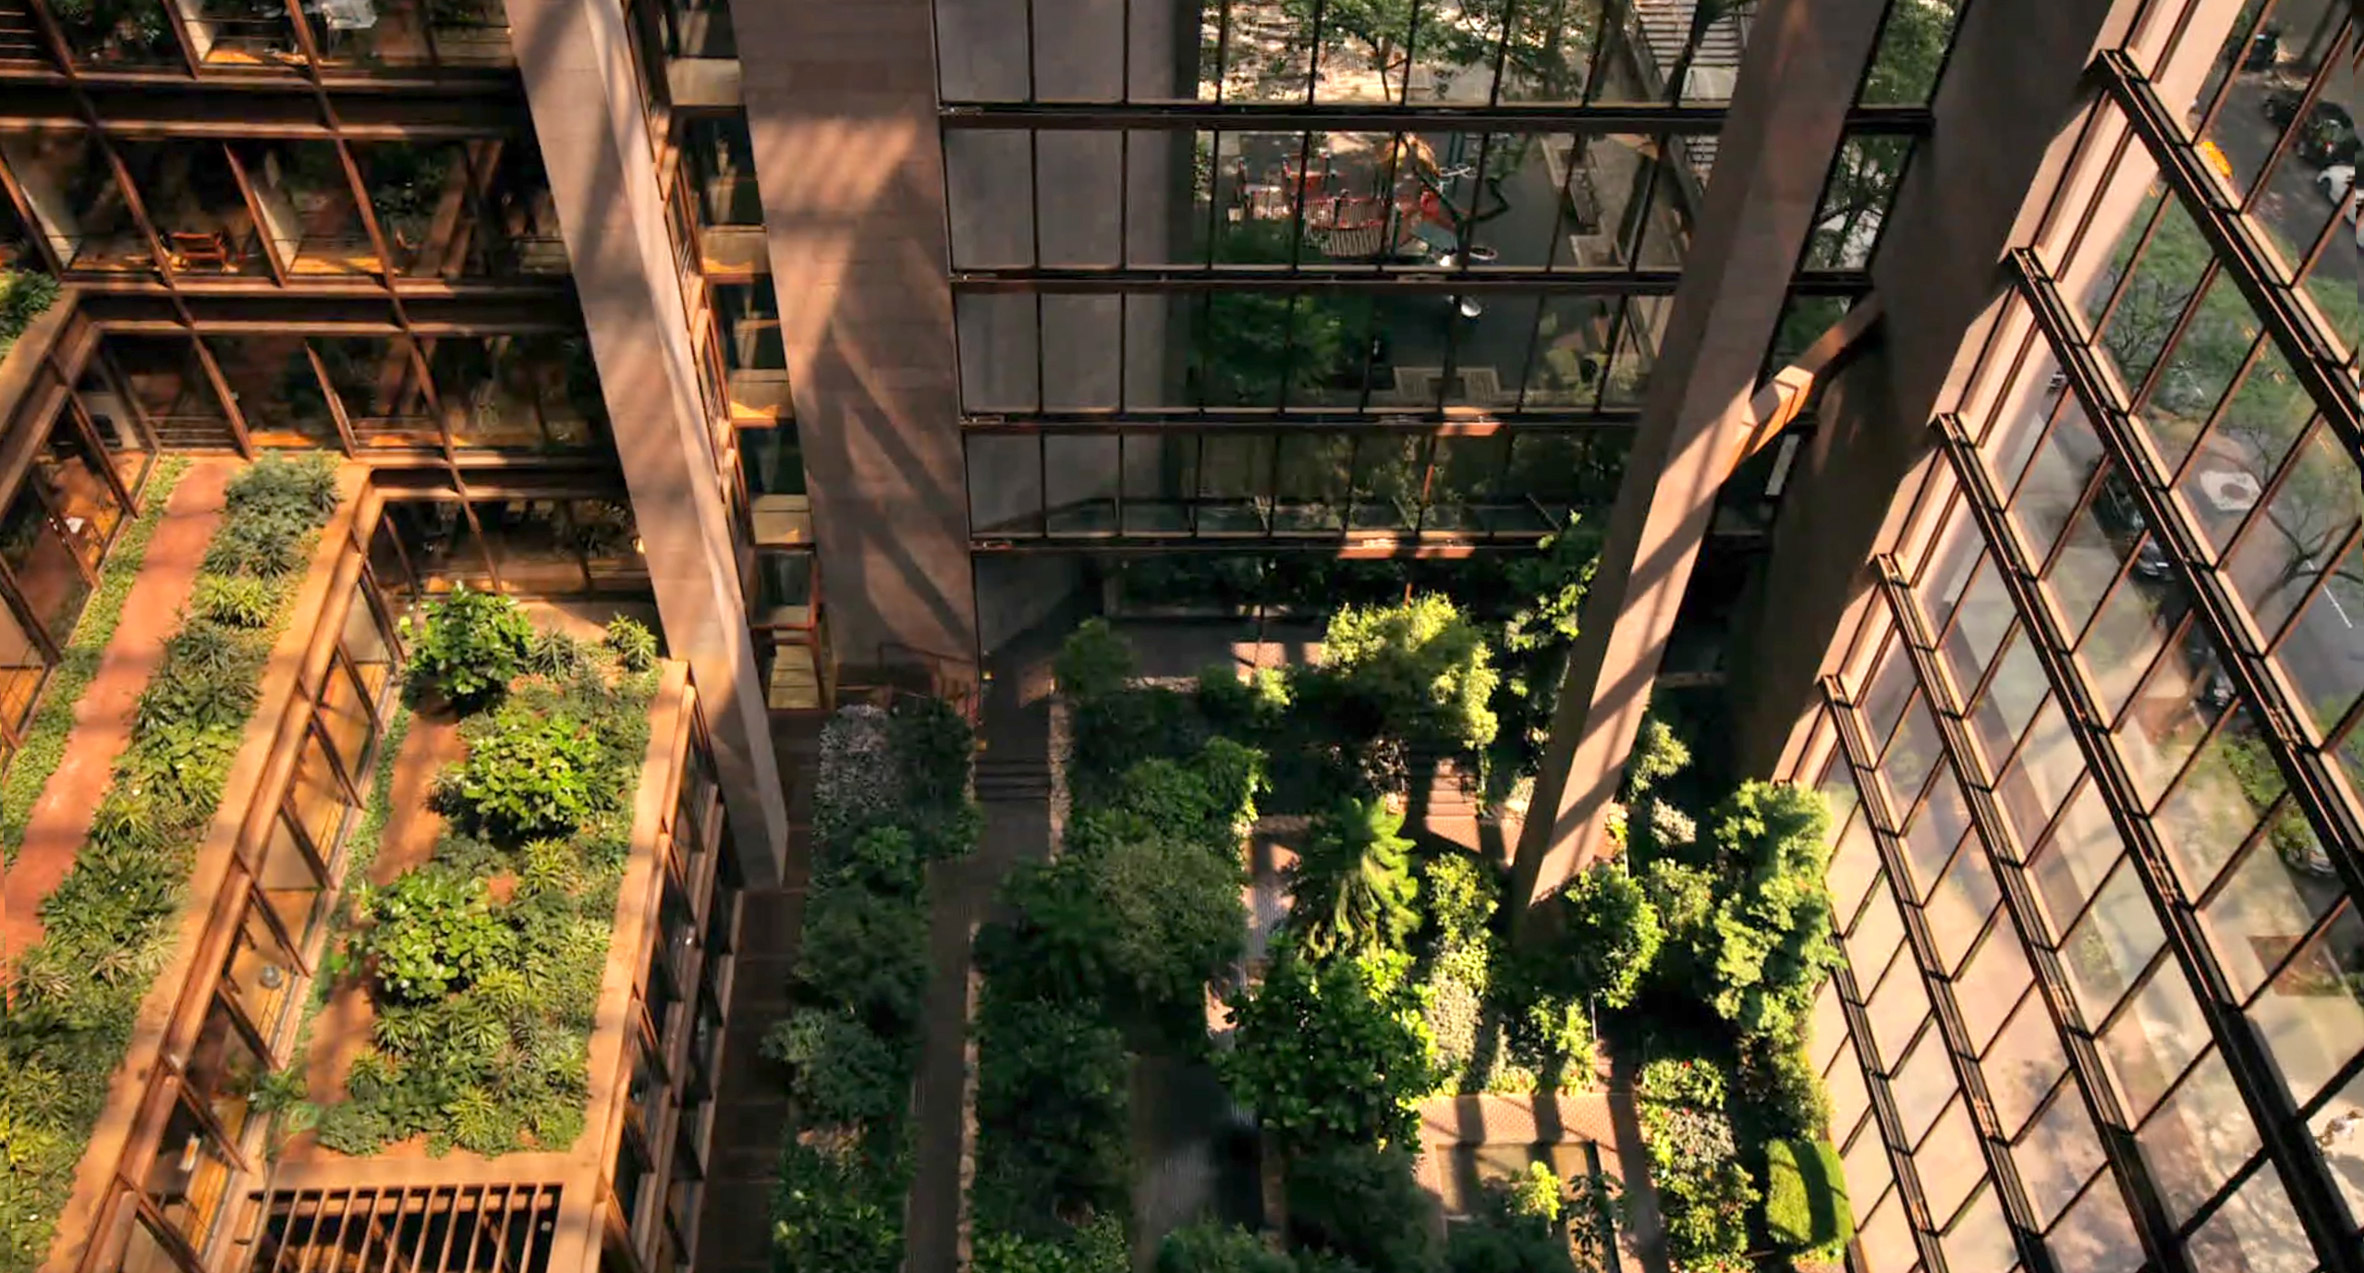 The Ford Foundation in New York by KRJD